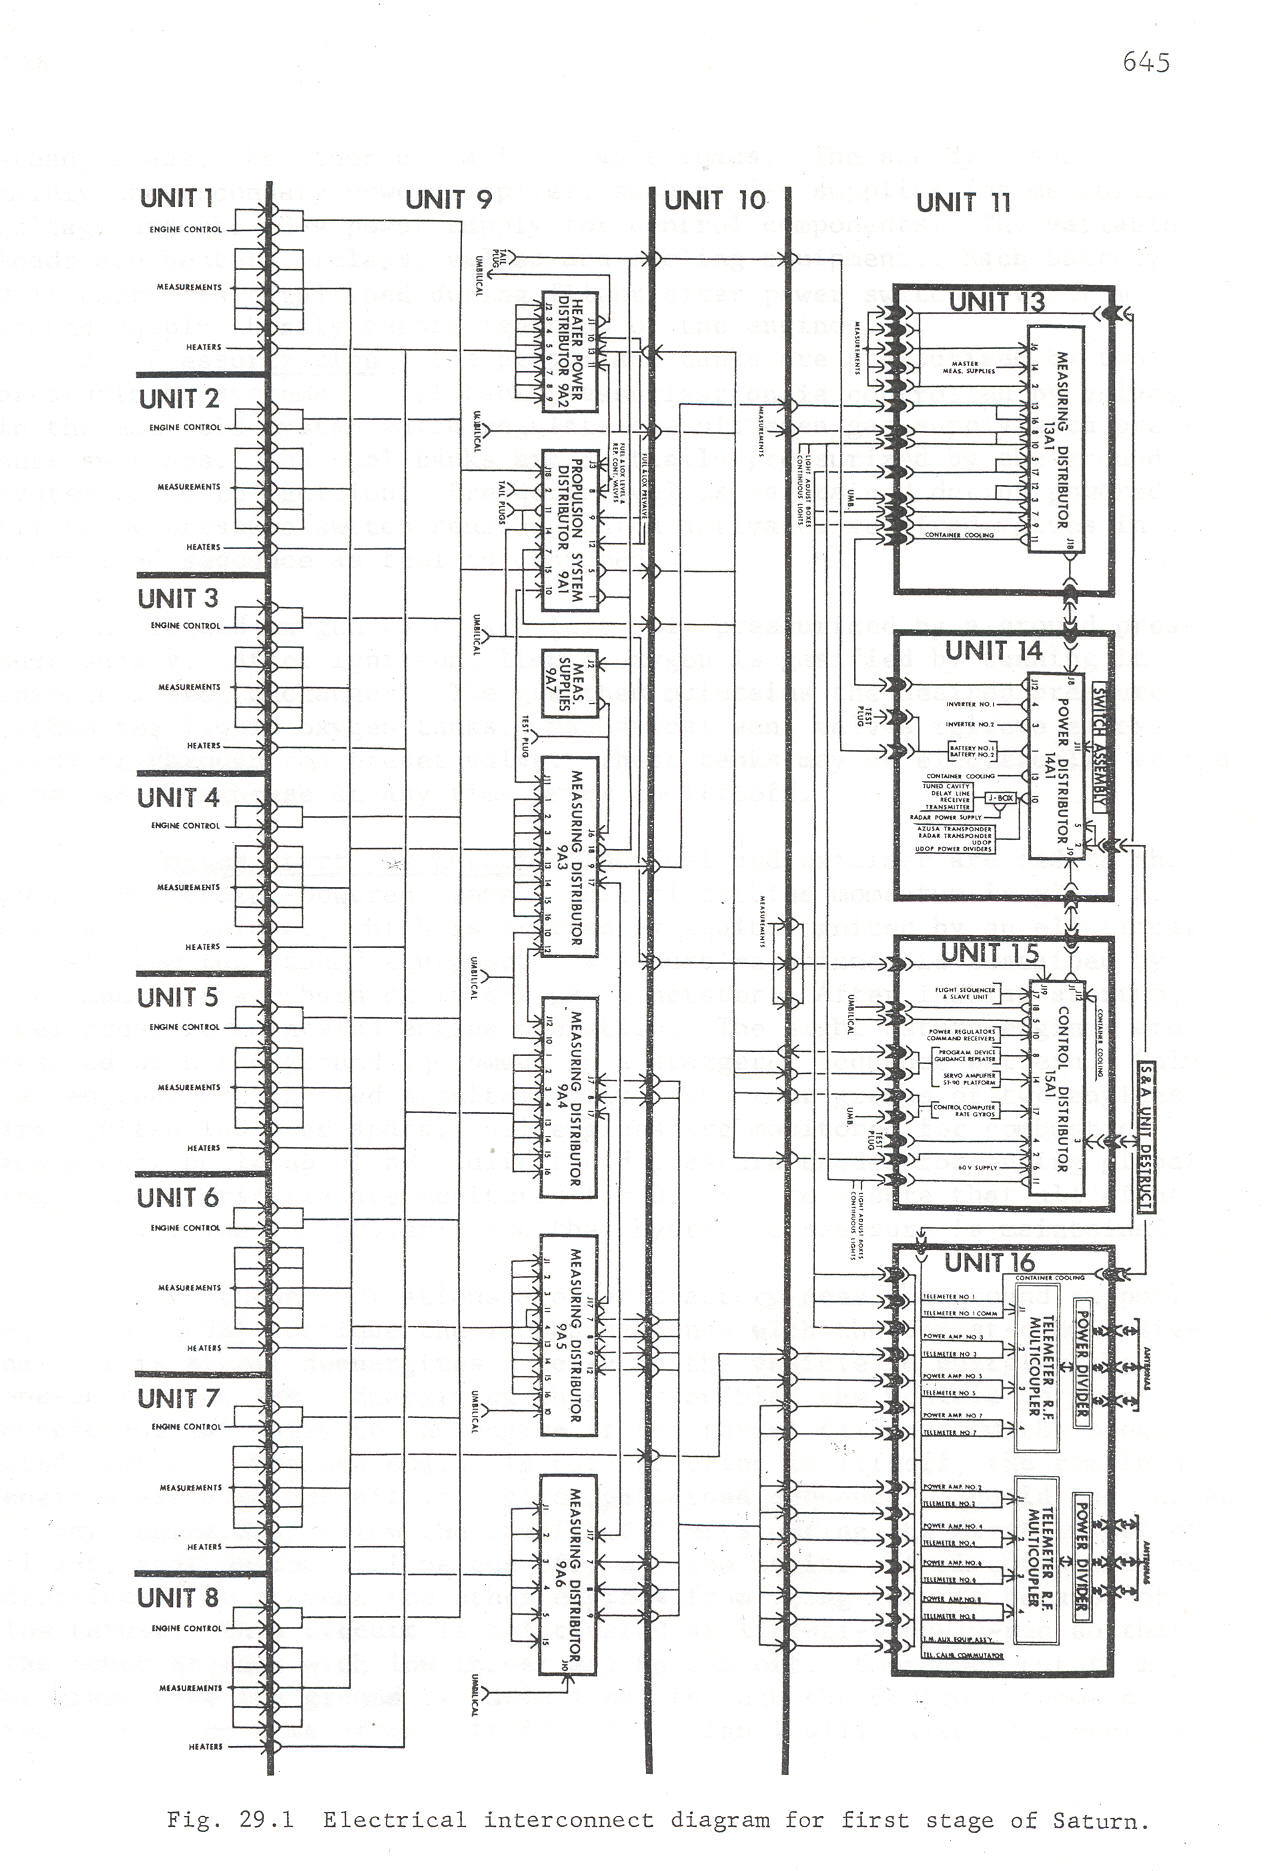 Troubleshooting Basic Electrical Circuit System Wiring Diagrams Saturn